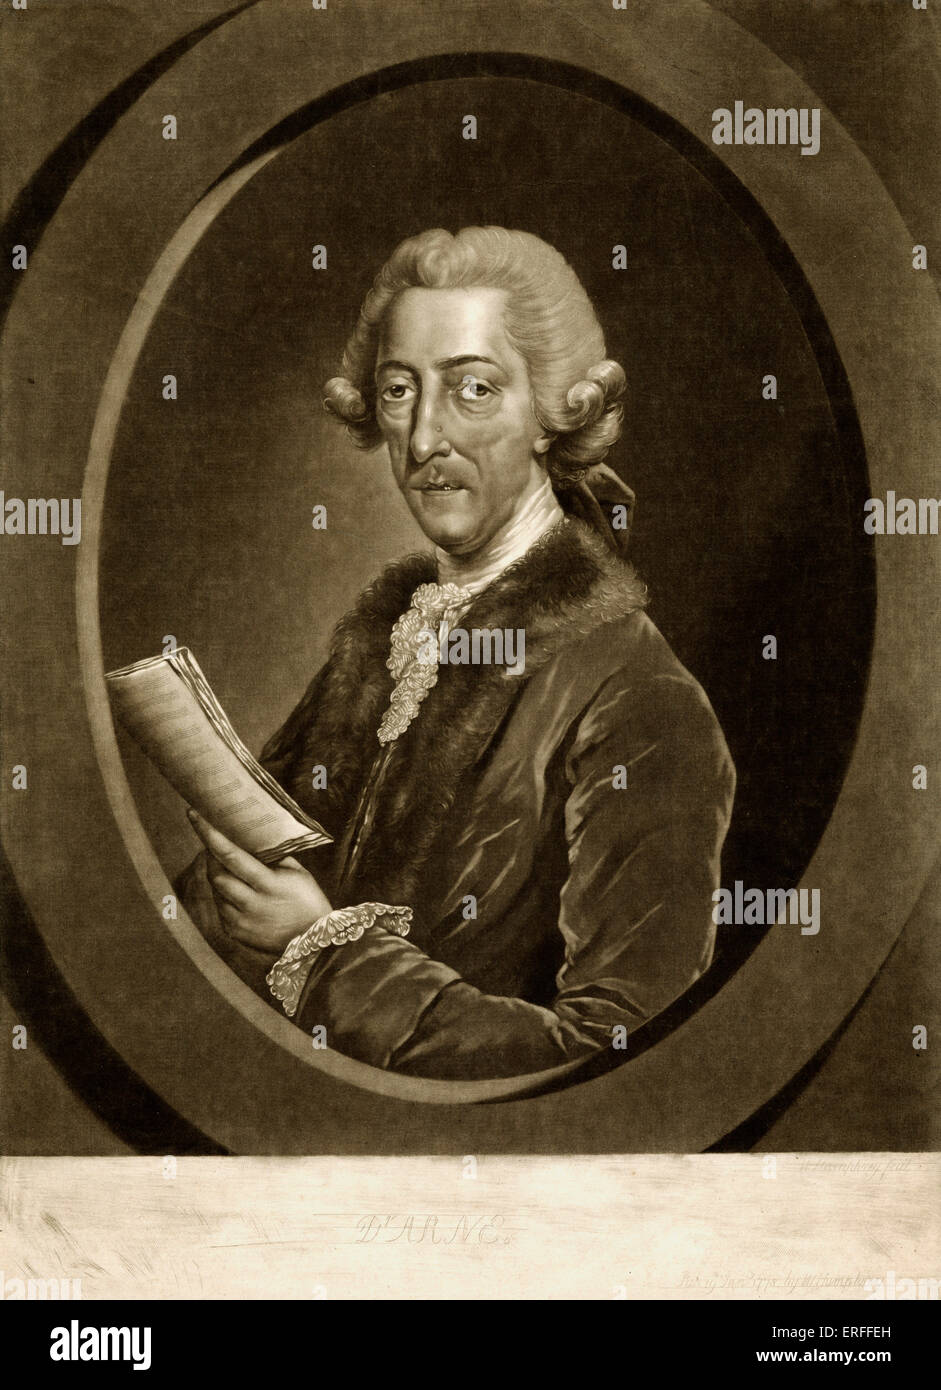 Thomas Augustine Arne - titled 'Dr Arne'.  English Composer 1710-1778   holding a score  , wearing a coat - Stock Image